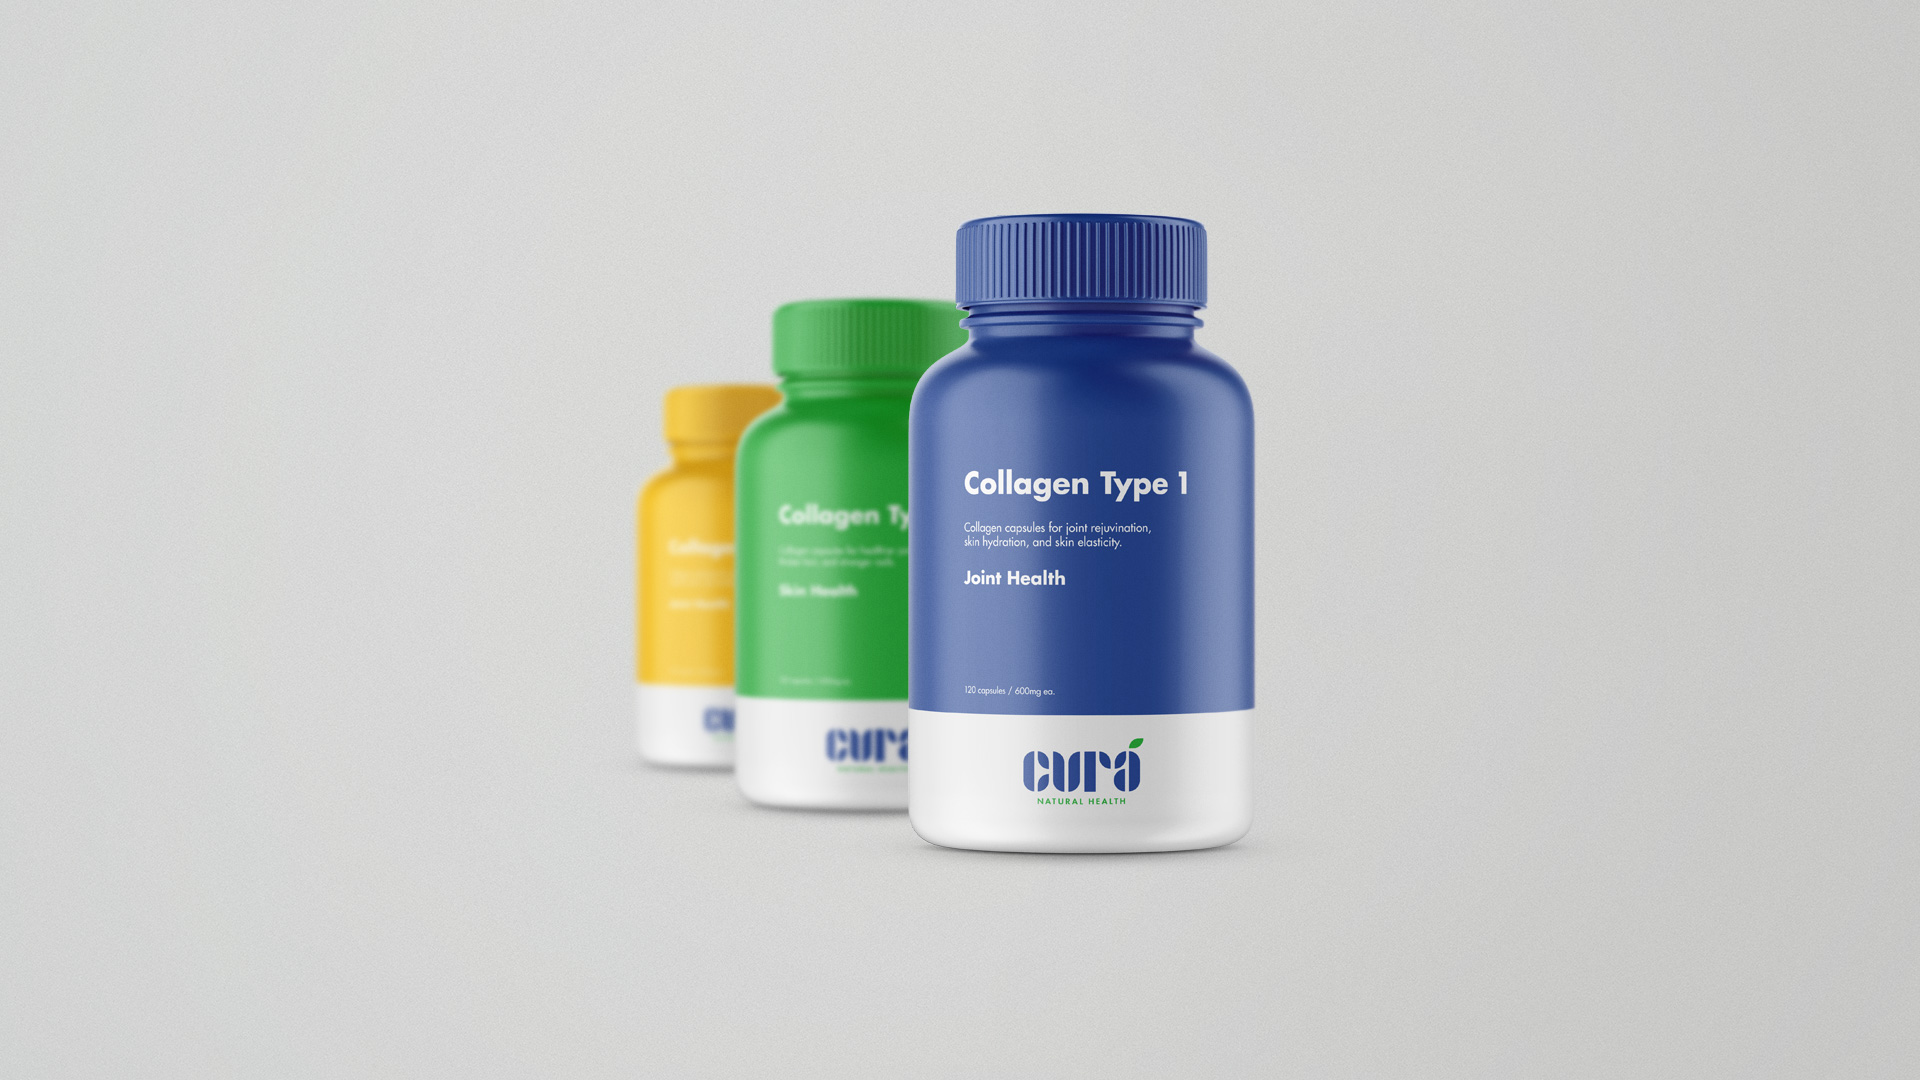 Cura - Adobe Hidden Treasures Logo Design Contest Winner - Packaging Design - Supplement Bottle 2